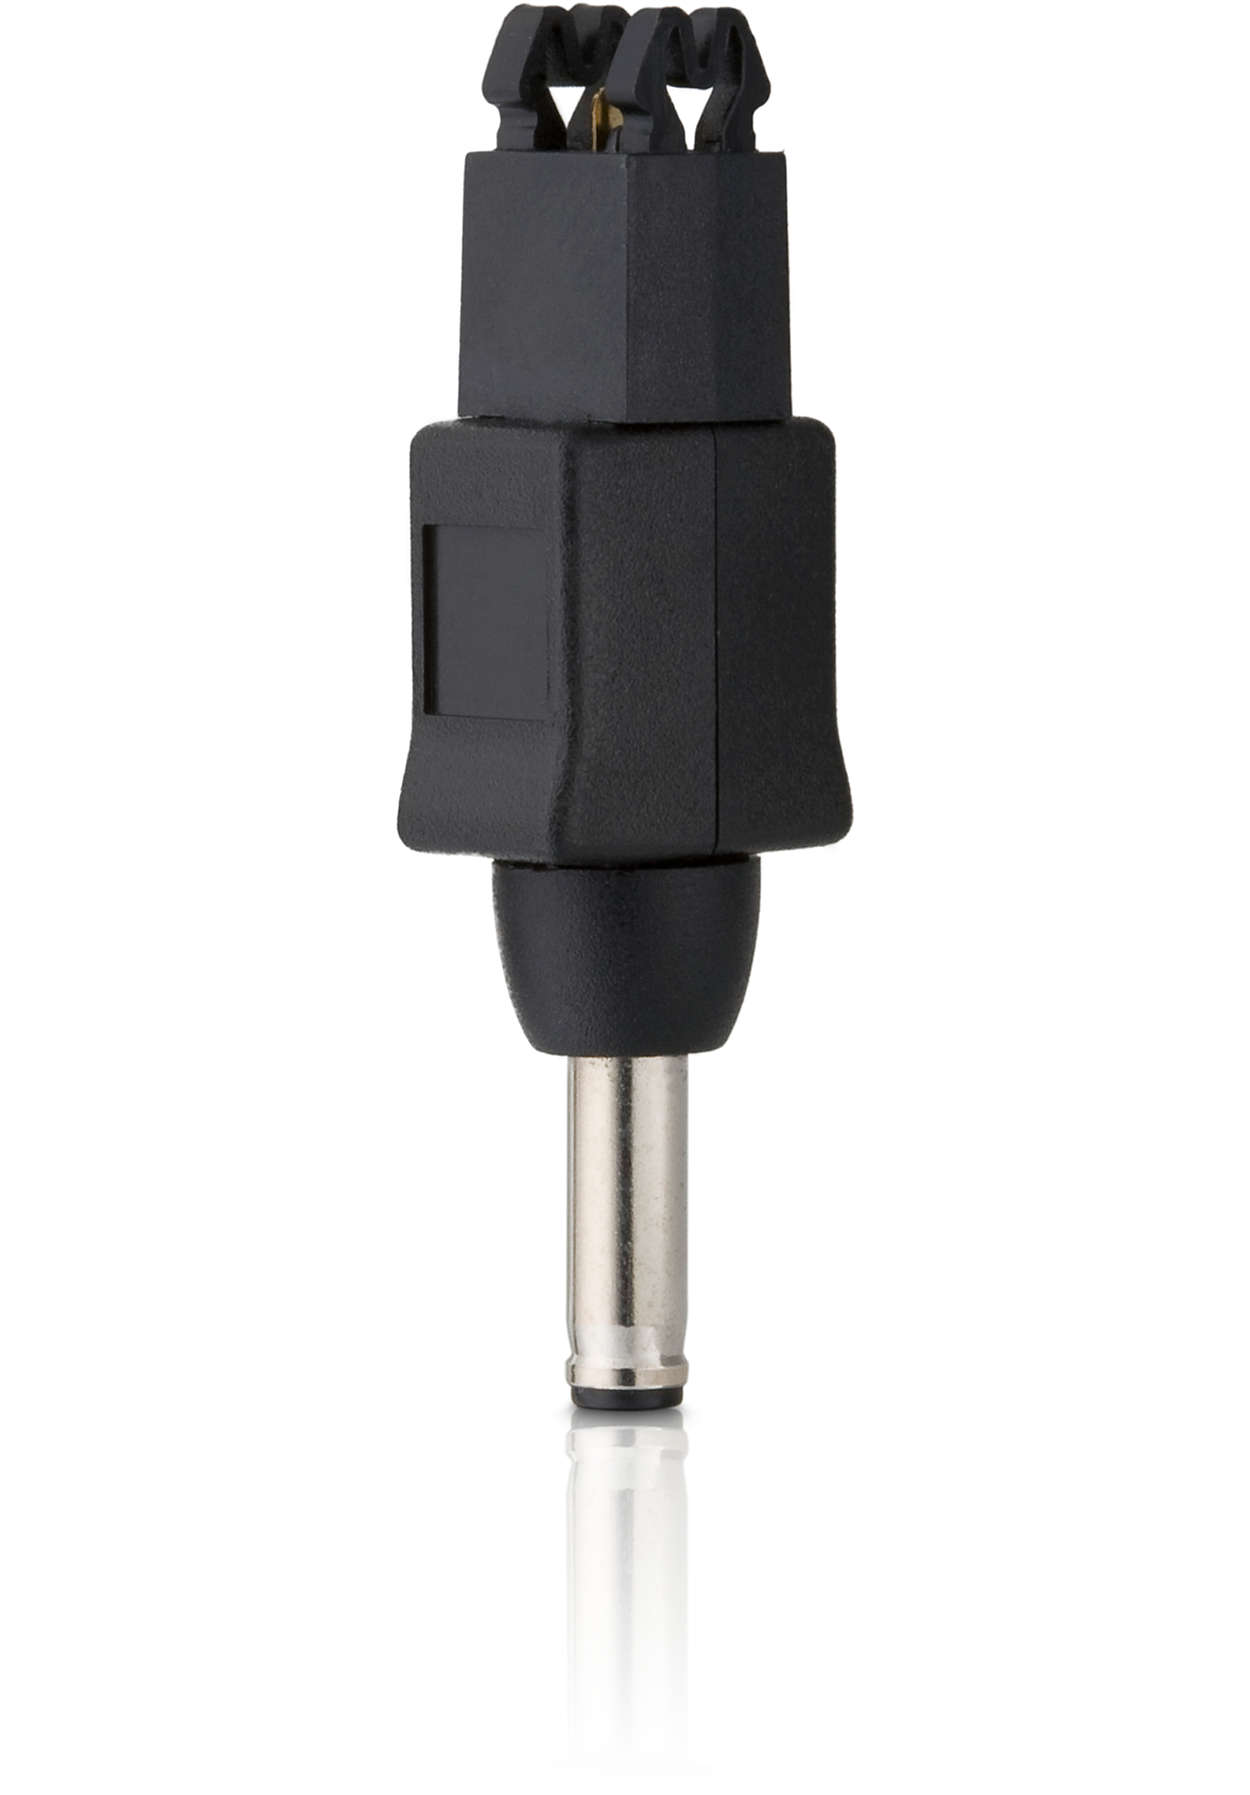 Connector tip for Sony-Ericsson phones